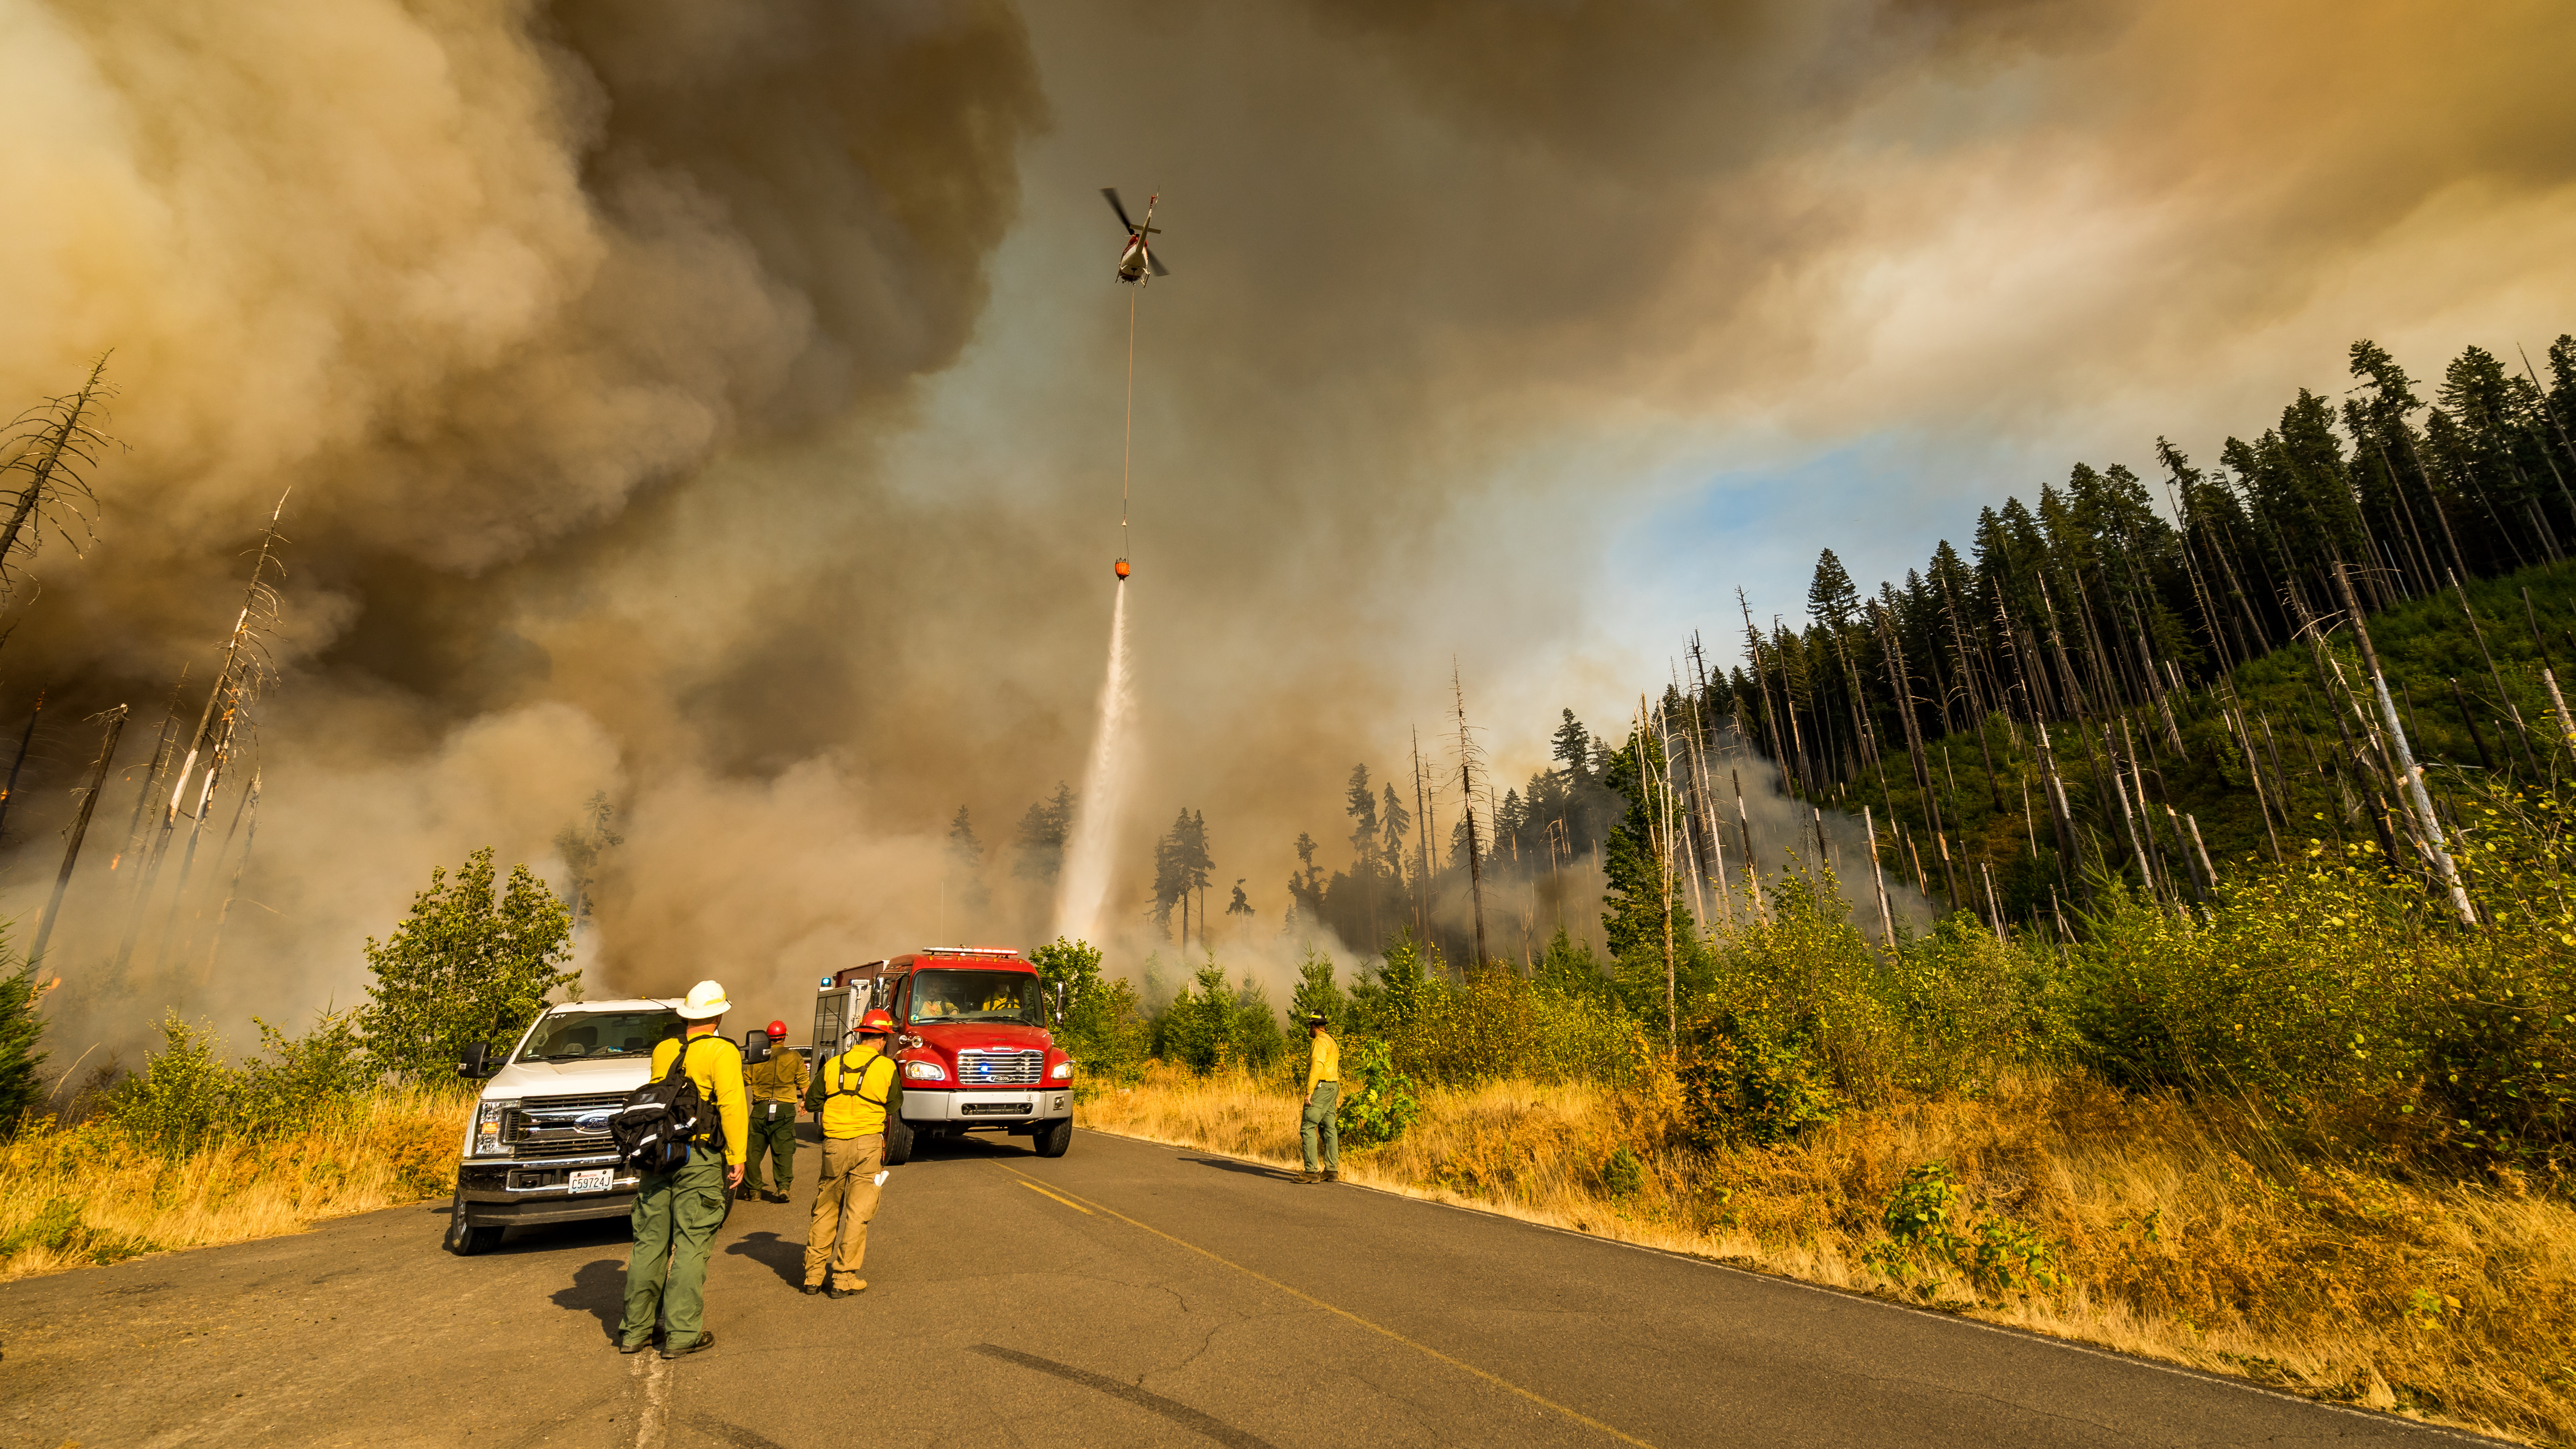 Oregon fire crews have relied on helicopters to attack wildfires from the air. Image courtesy of Marcus Kaufman, Oregon Department of Forestry.